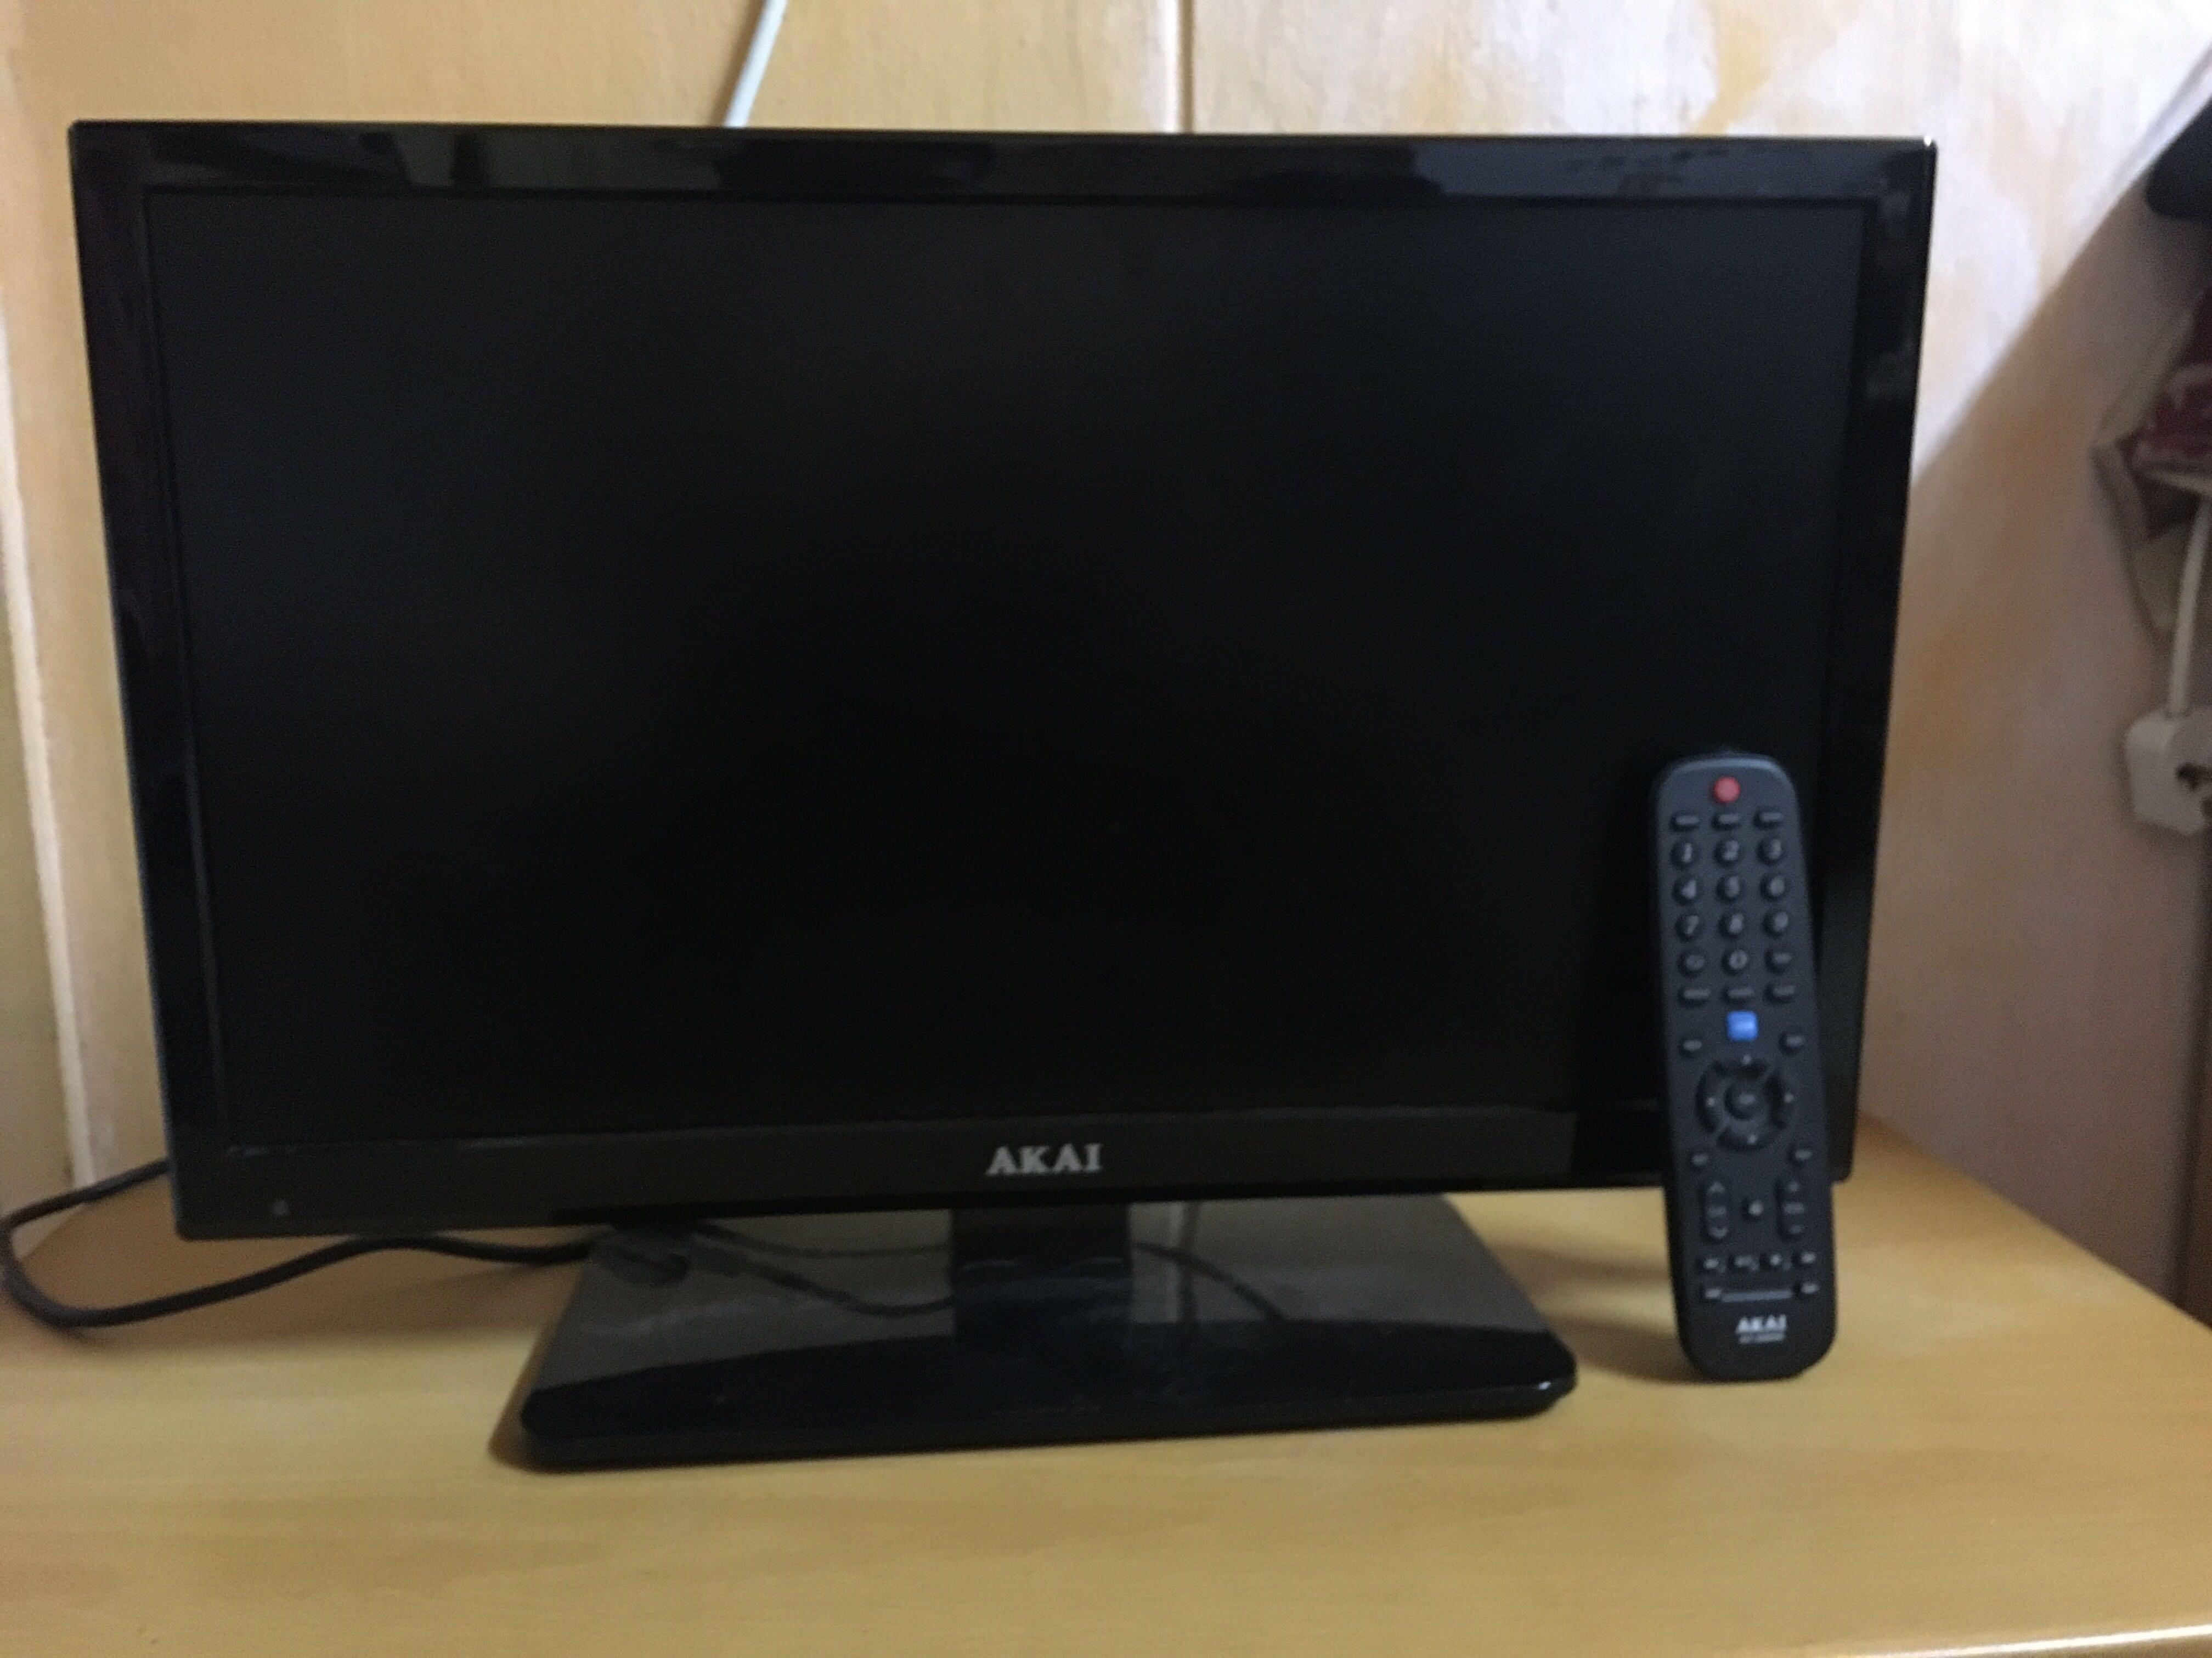 Txt Descargar AKAI LED TV (ALT-2205FHD)-bedroom TV, Home